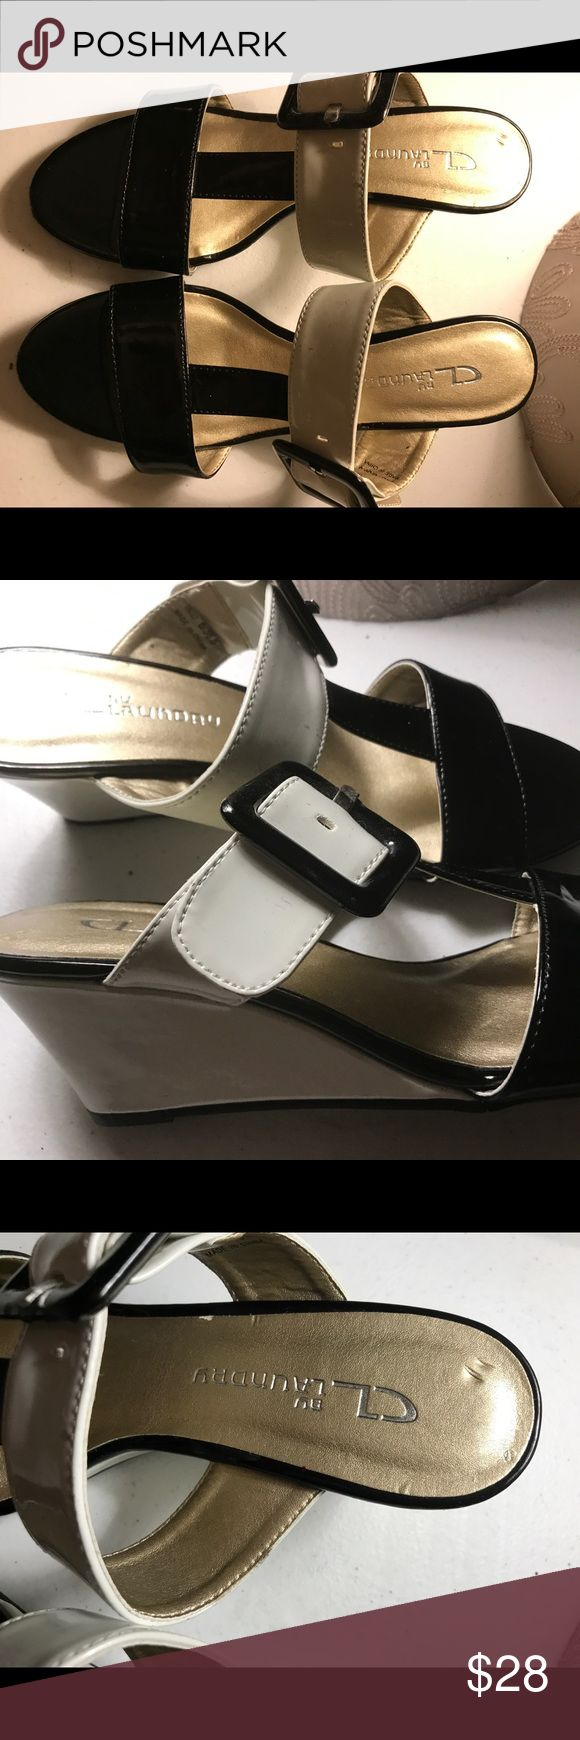 Chinese Laundry black and white wedges size 6 This is a pair of beautiful black and white Chinese Laundry wedges with buckle in almost new condition. There is but a few marks on the shoes very minor. Chinese Laundry Shoes Wedges